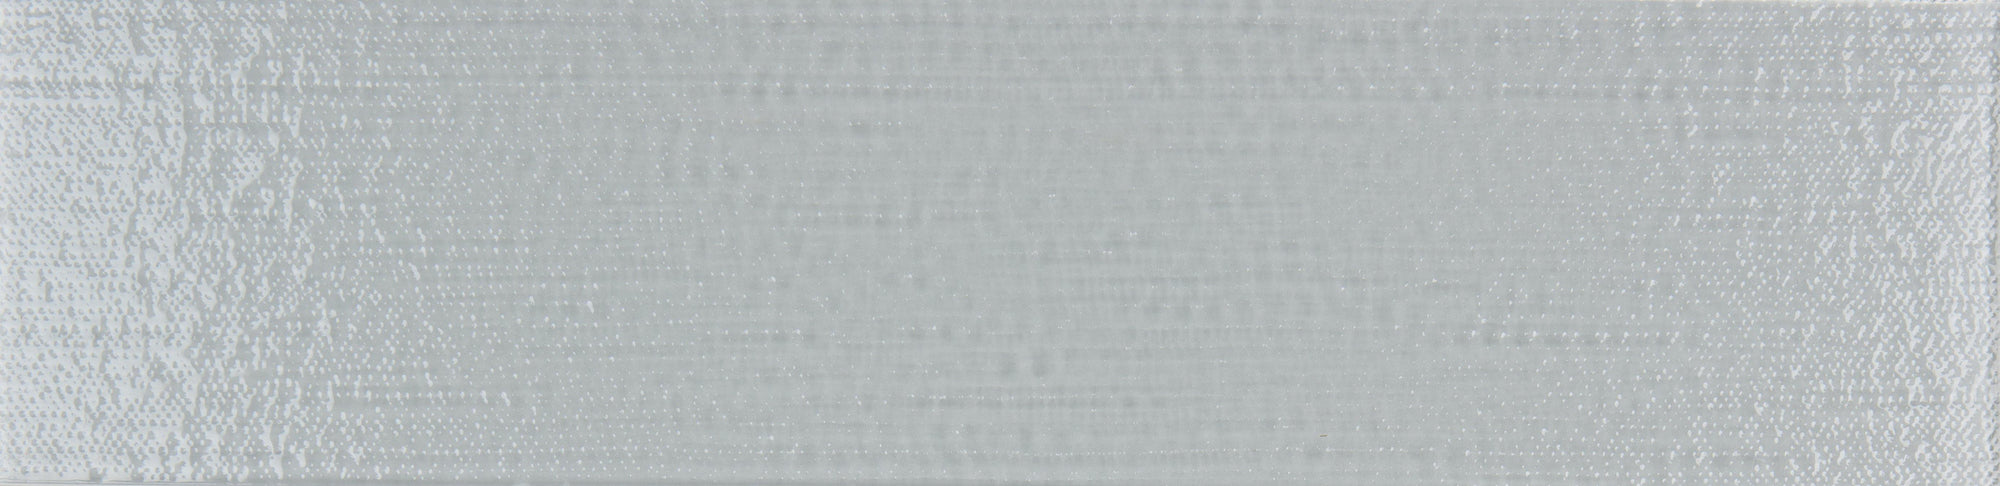 "Glacier Linen 4"" x 16"" Subway Tile"